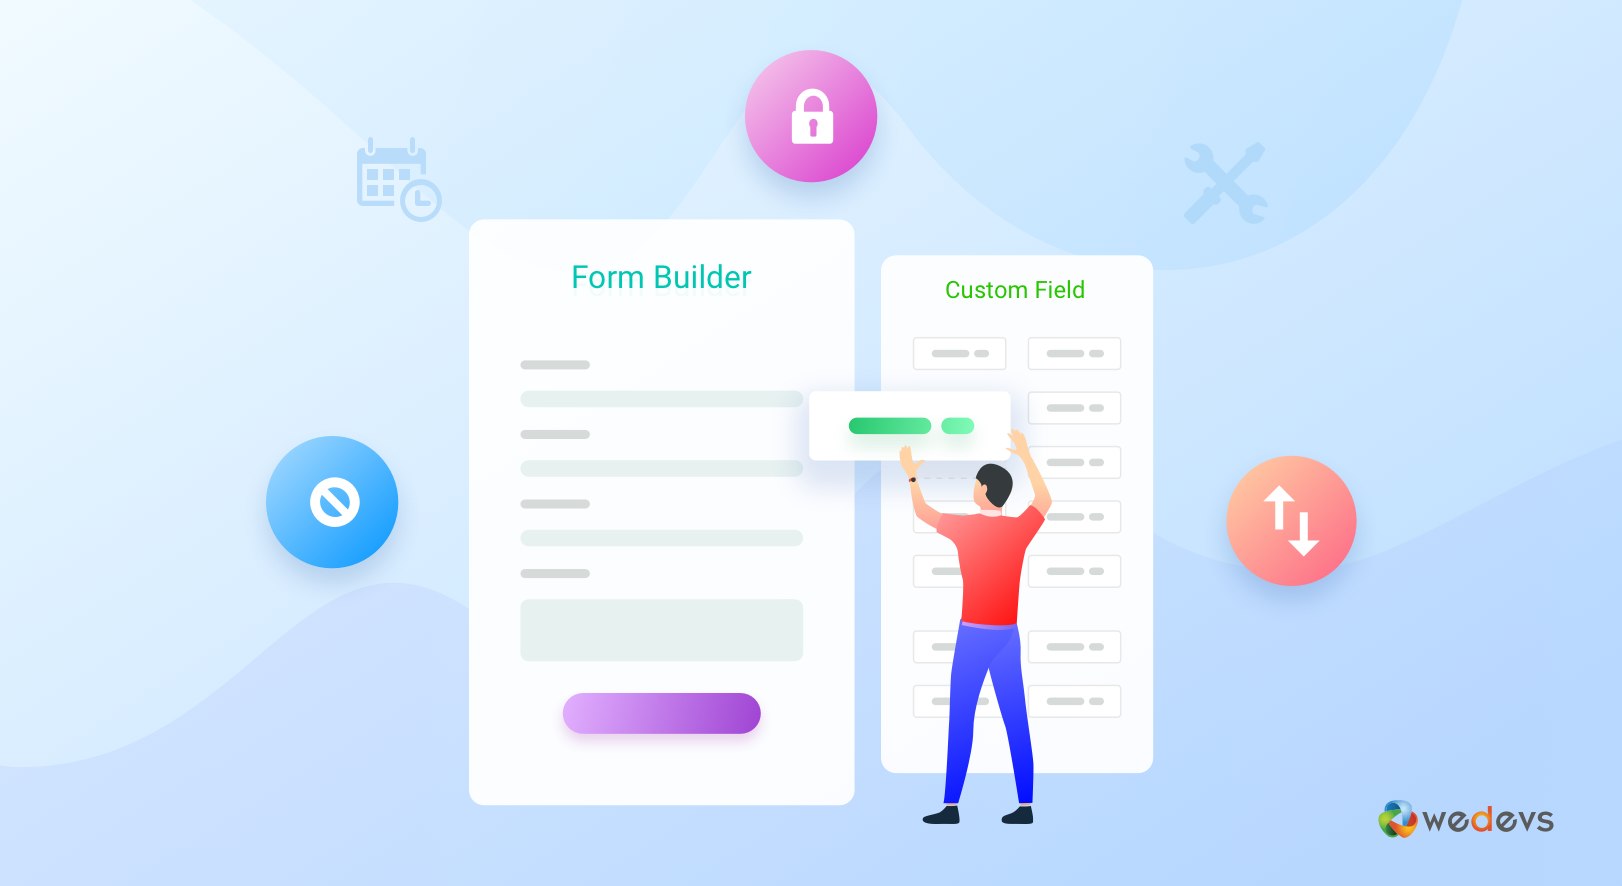 Most Useful Way A WordPress Contact Form Builder Should Perform in 2021